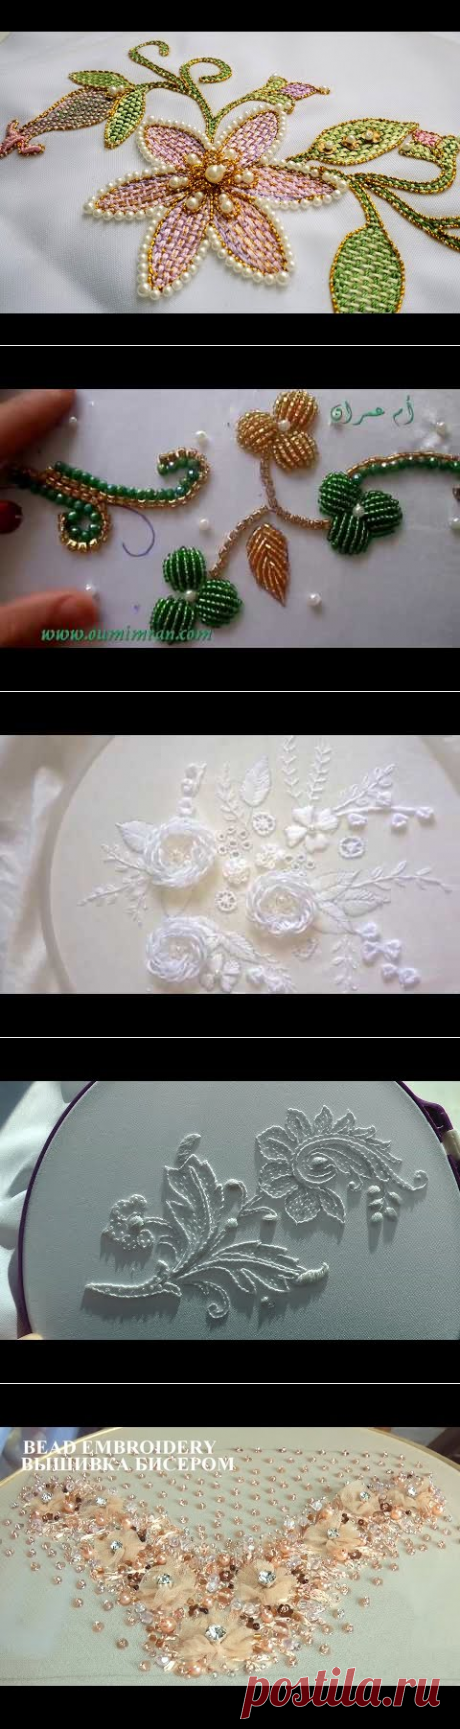 ВЫШИВКА: ШТОПКА \ Hand Embroidery: Checkered Flower Stitch - YouTube